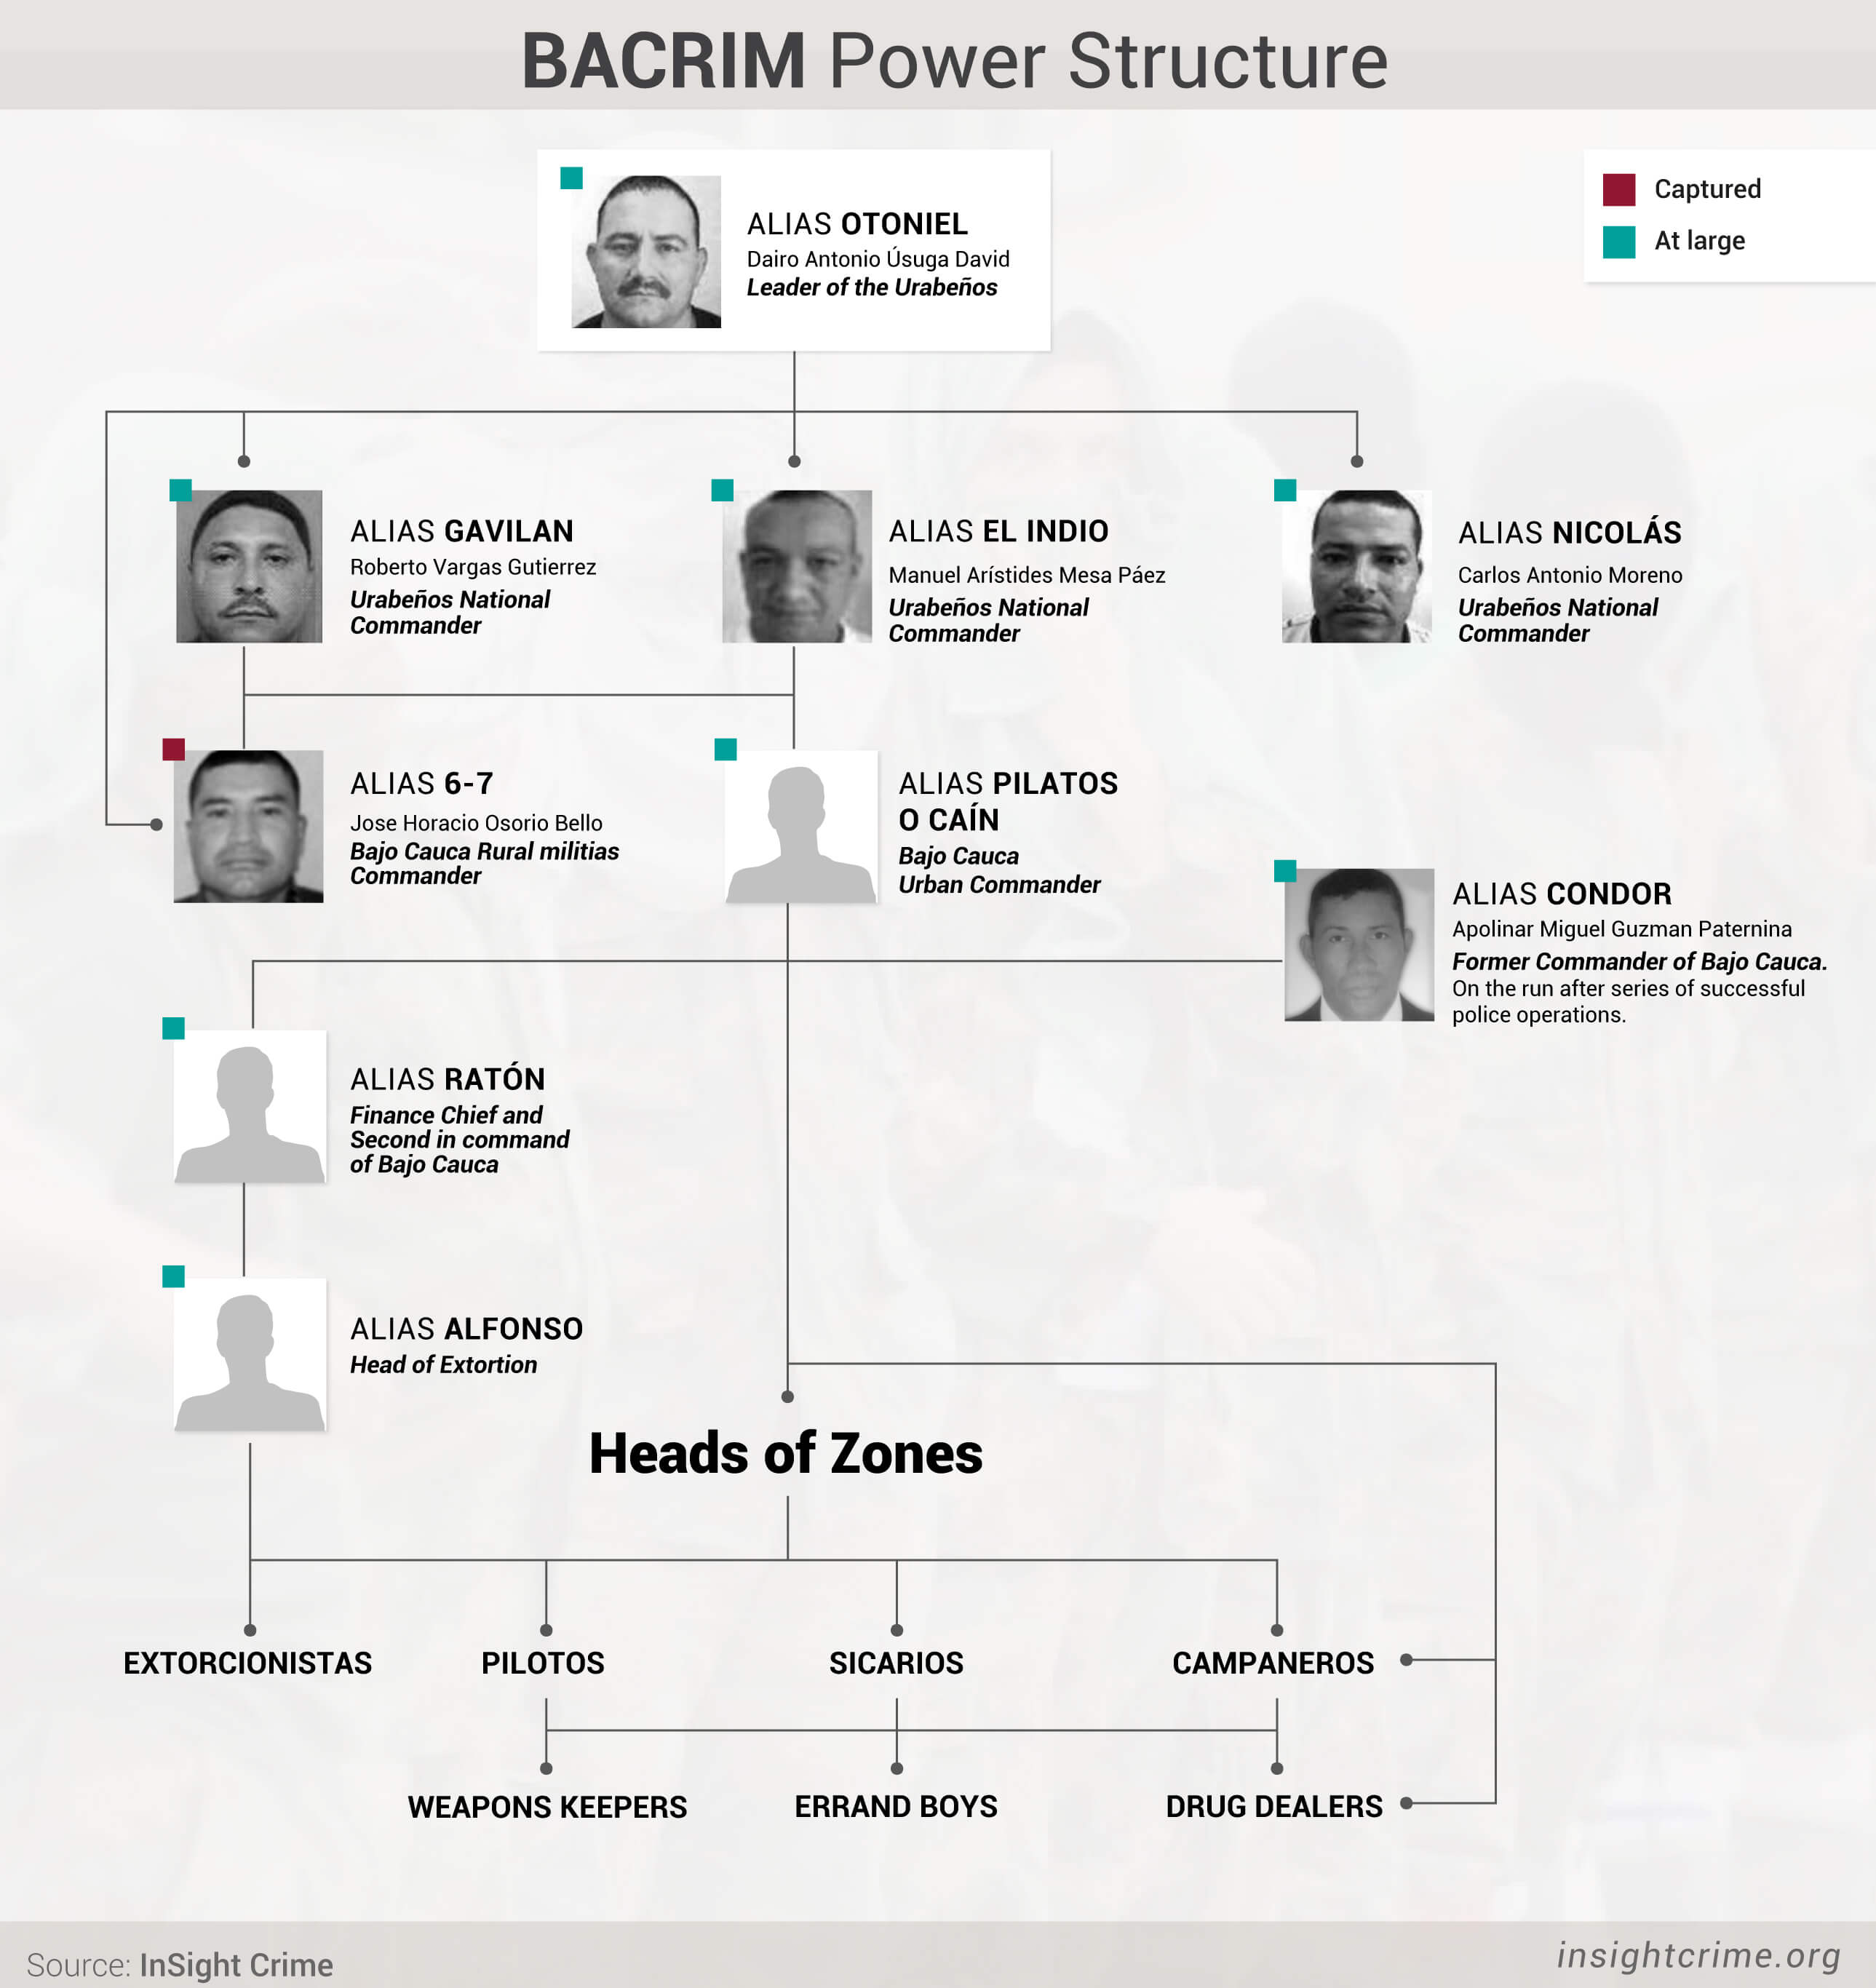 BACRIM-Power-Structure 1